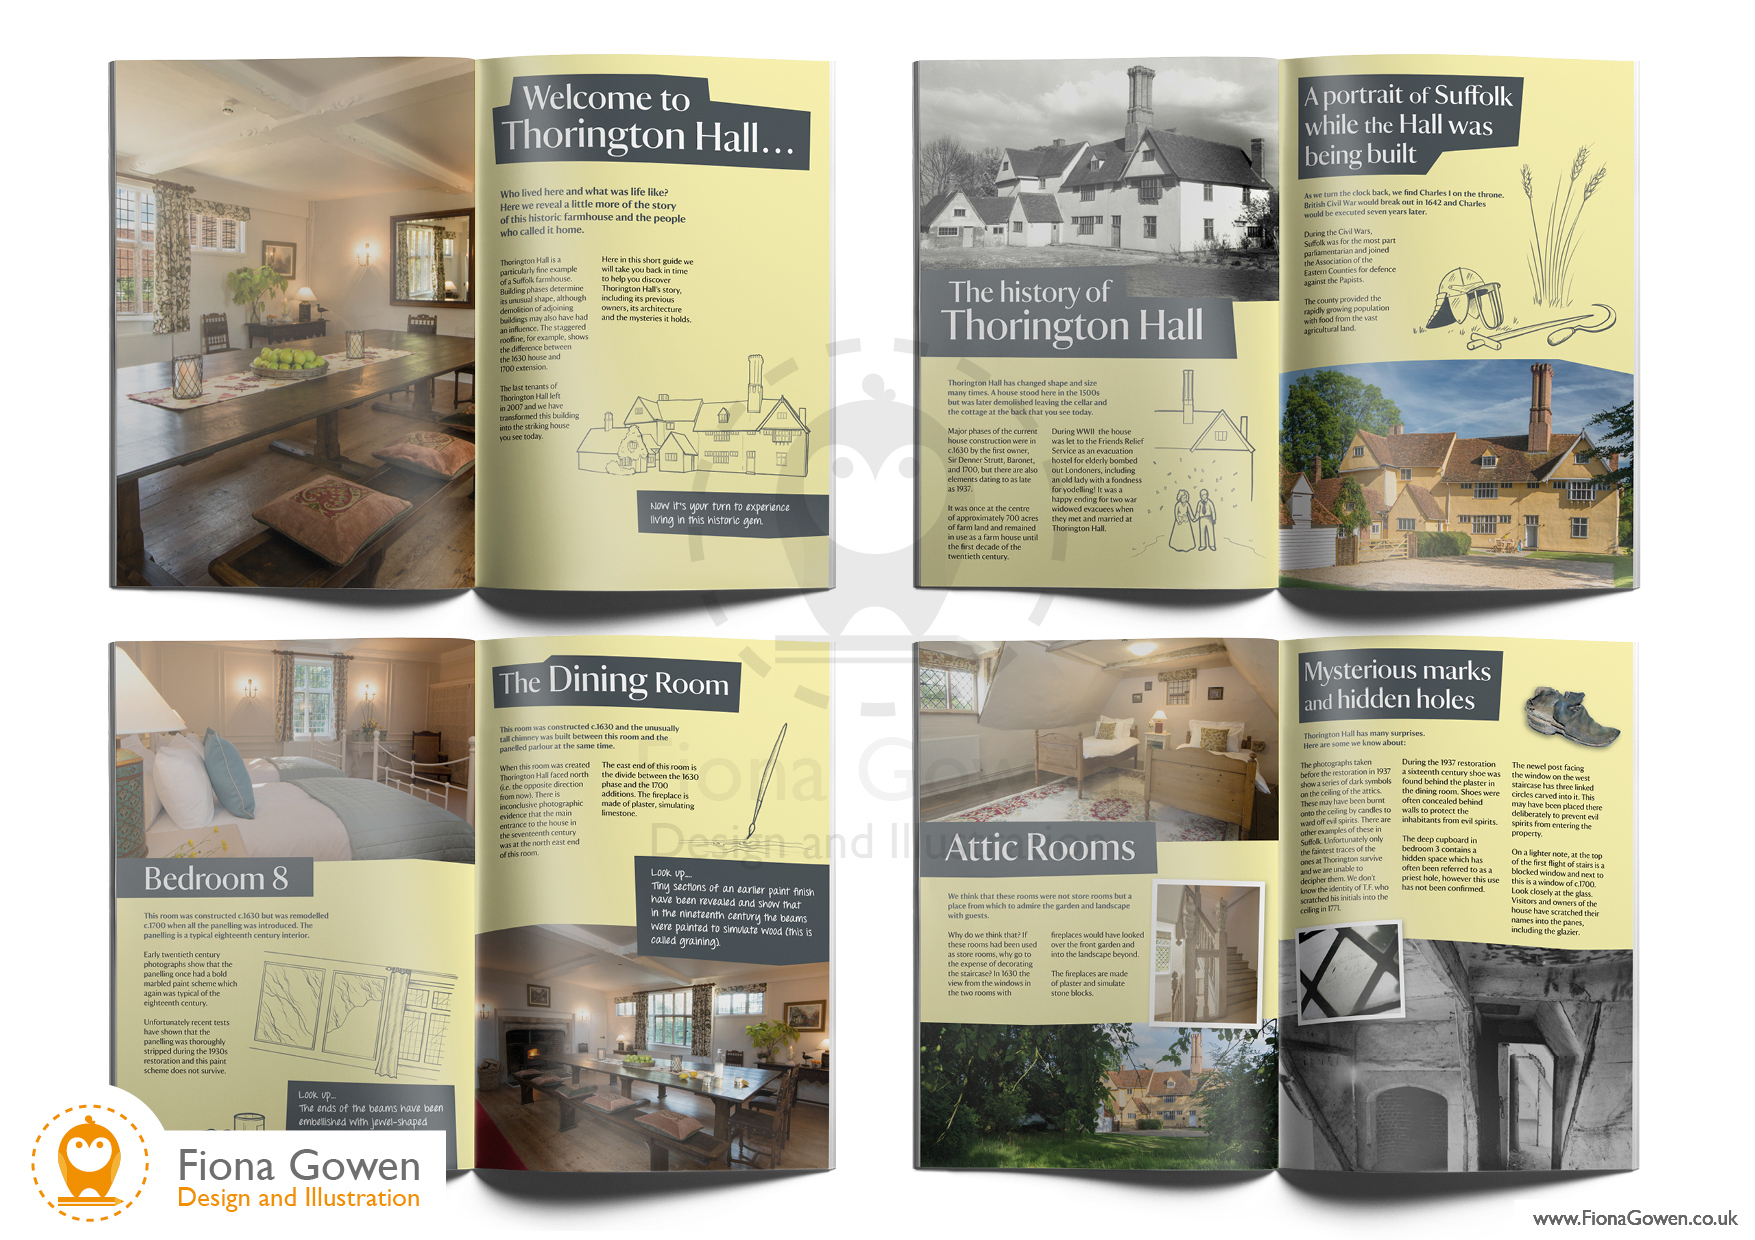 Interior spreads from the National Trust Holiday cottage guidebook for Thorington Hall in Suffolk. Designed and illustrated by Fiona Gowen